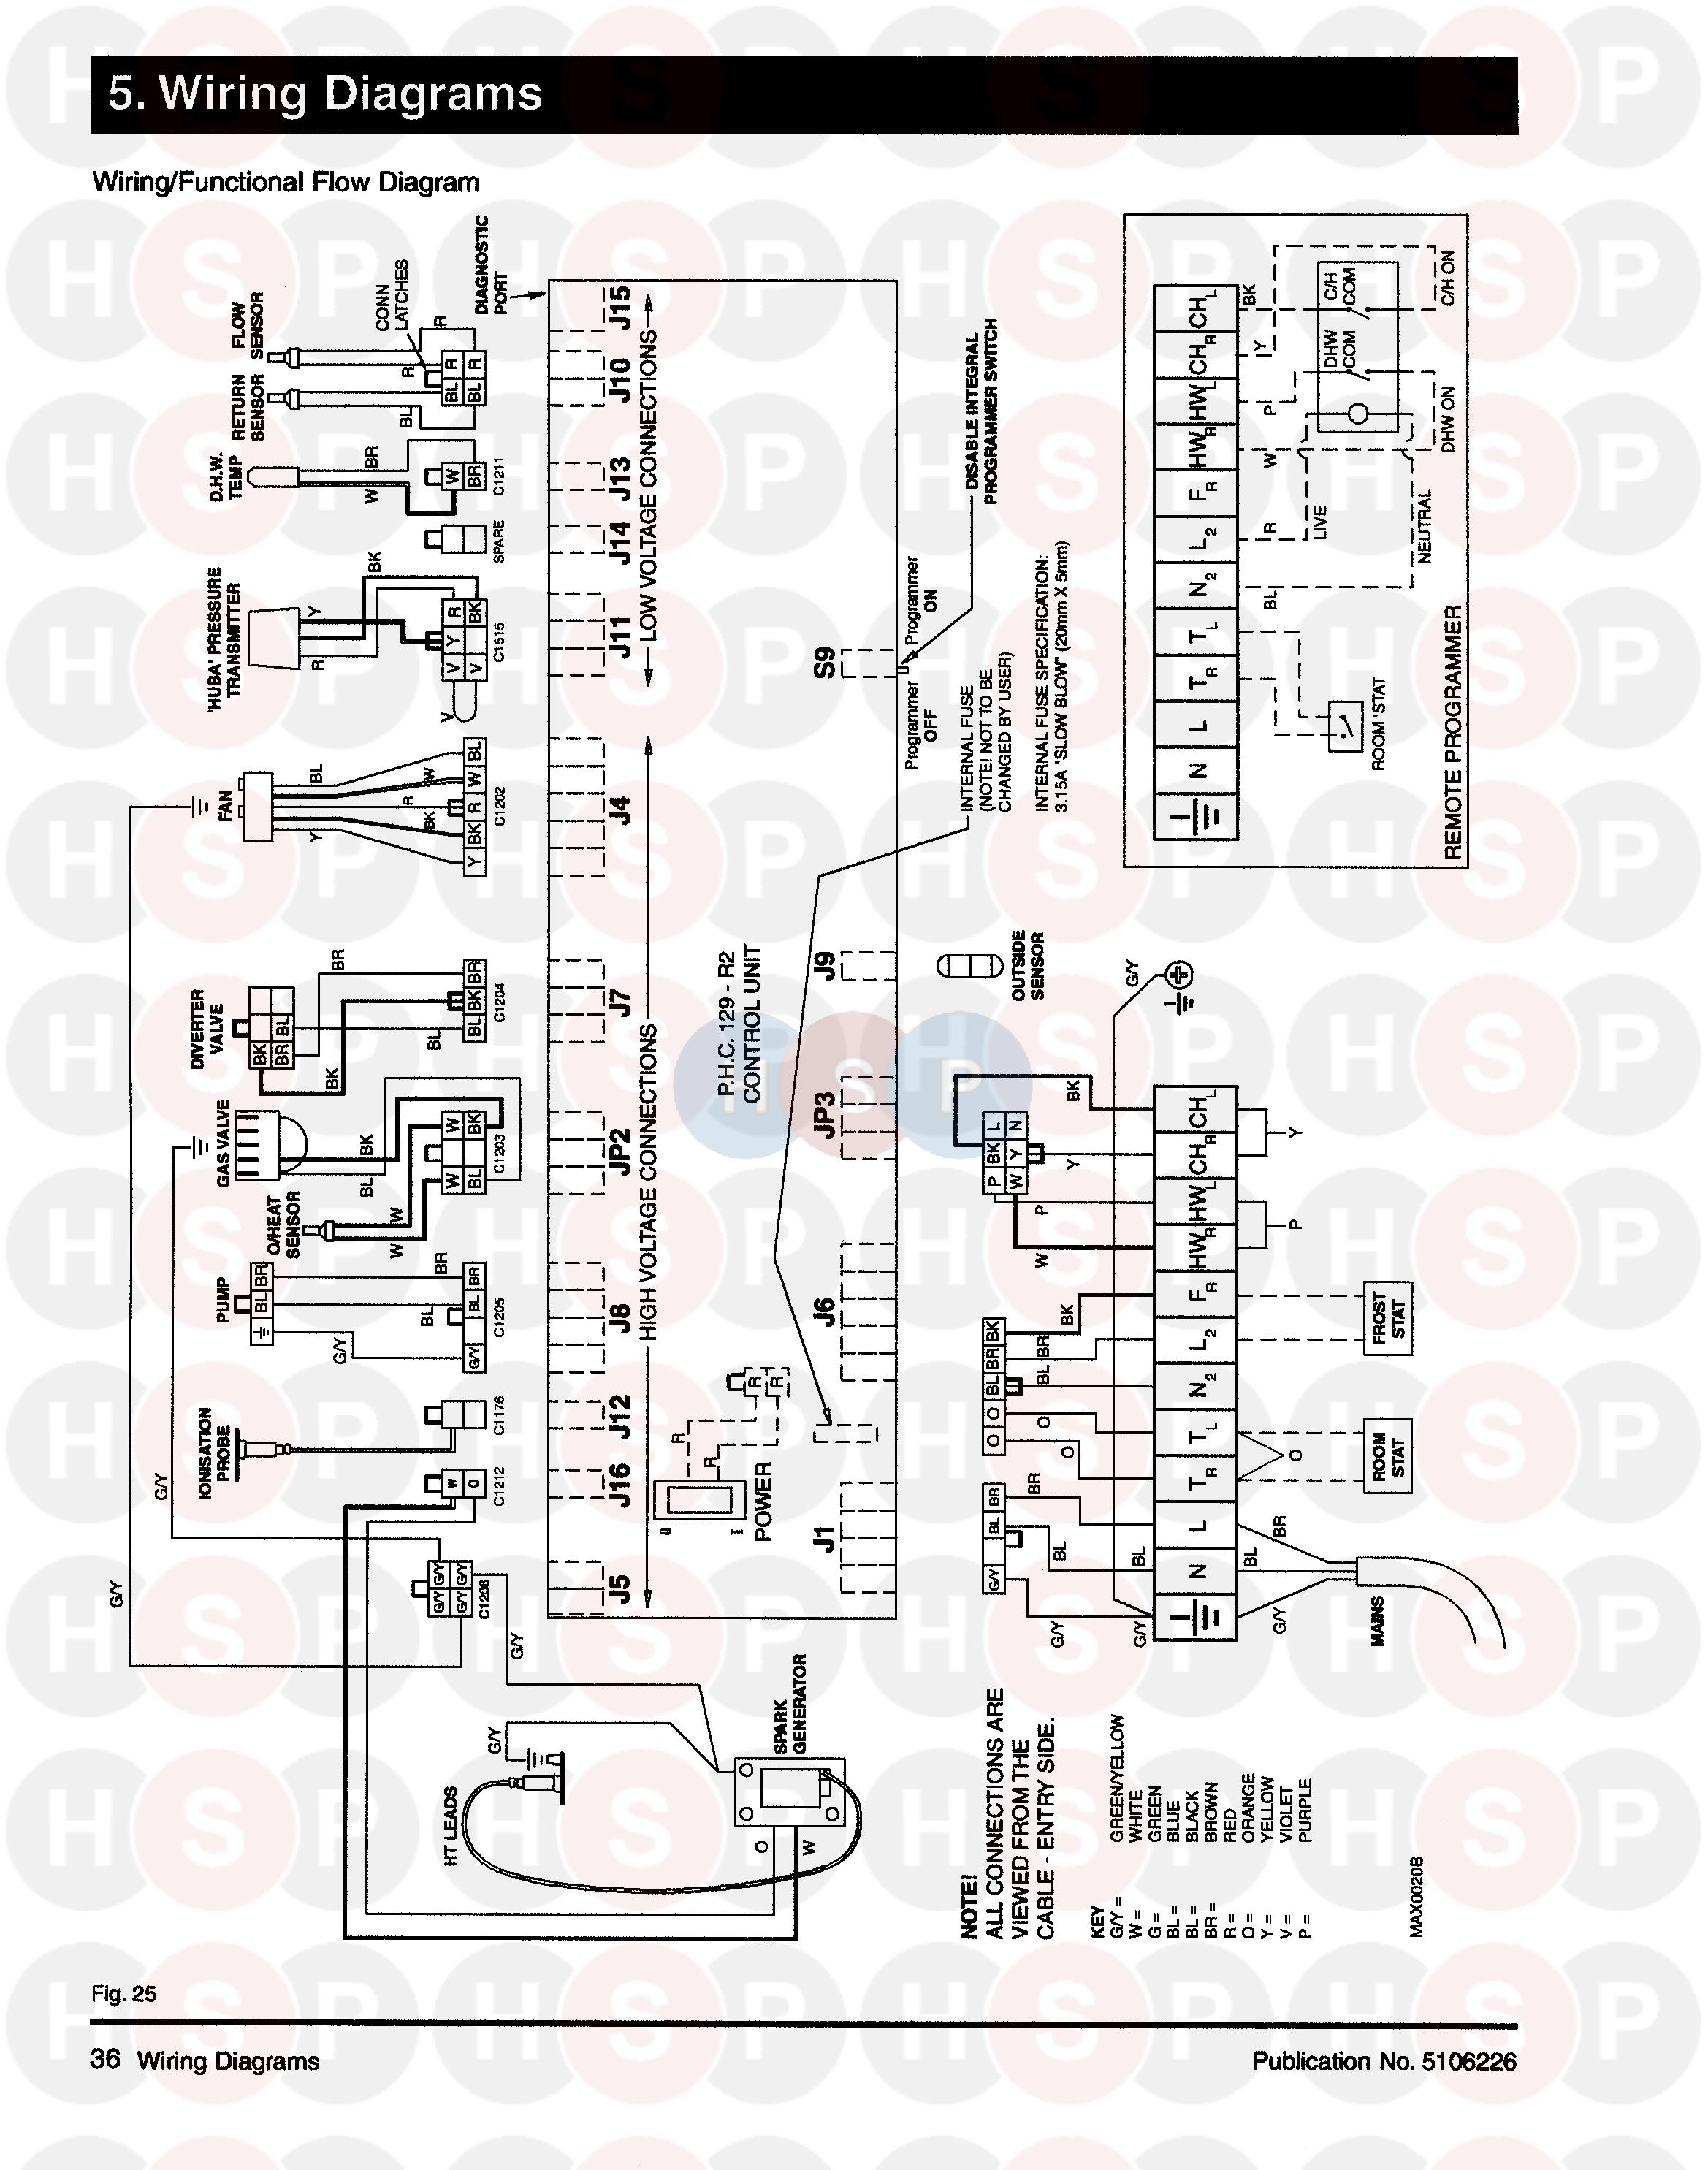 Potterton POWERMAX 150 HE Appliance Diagram (Wiring